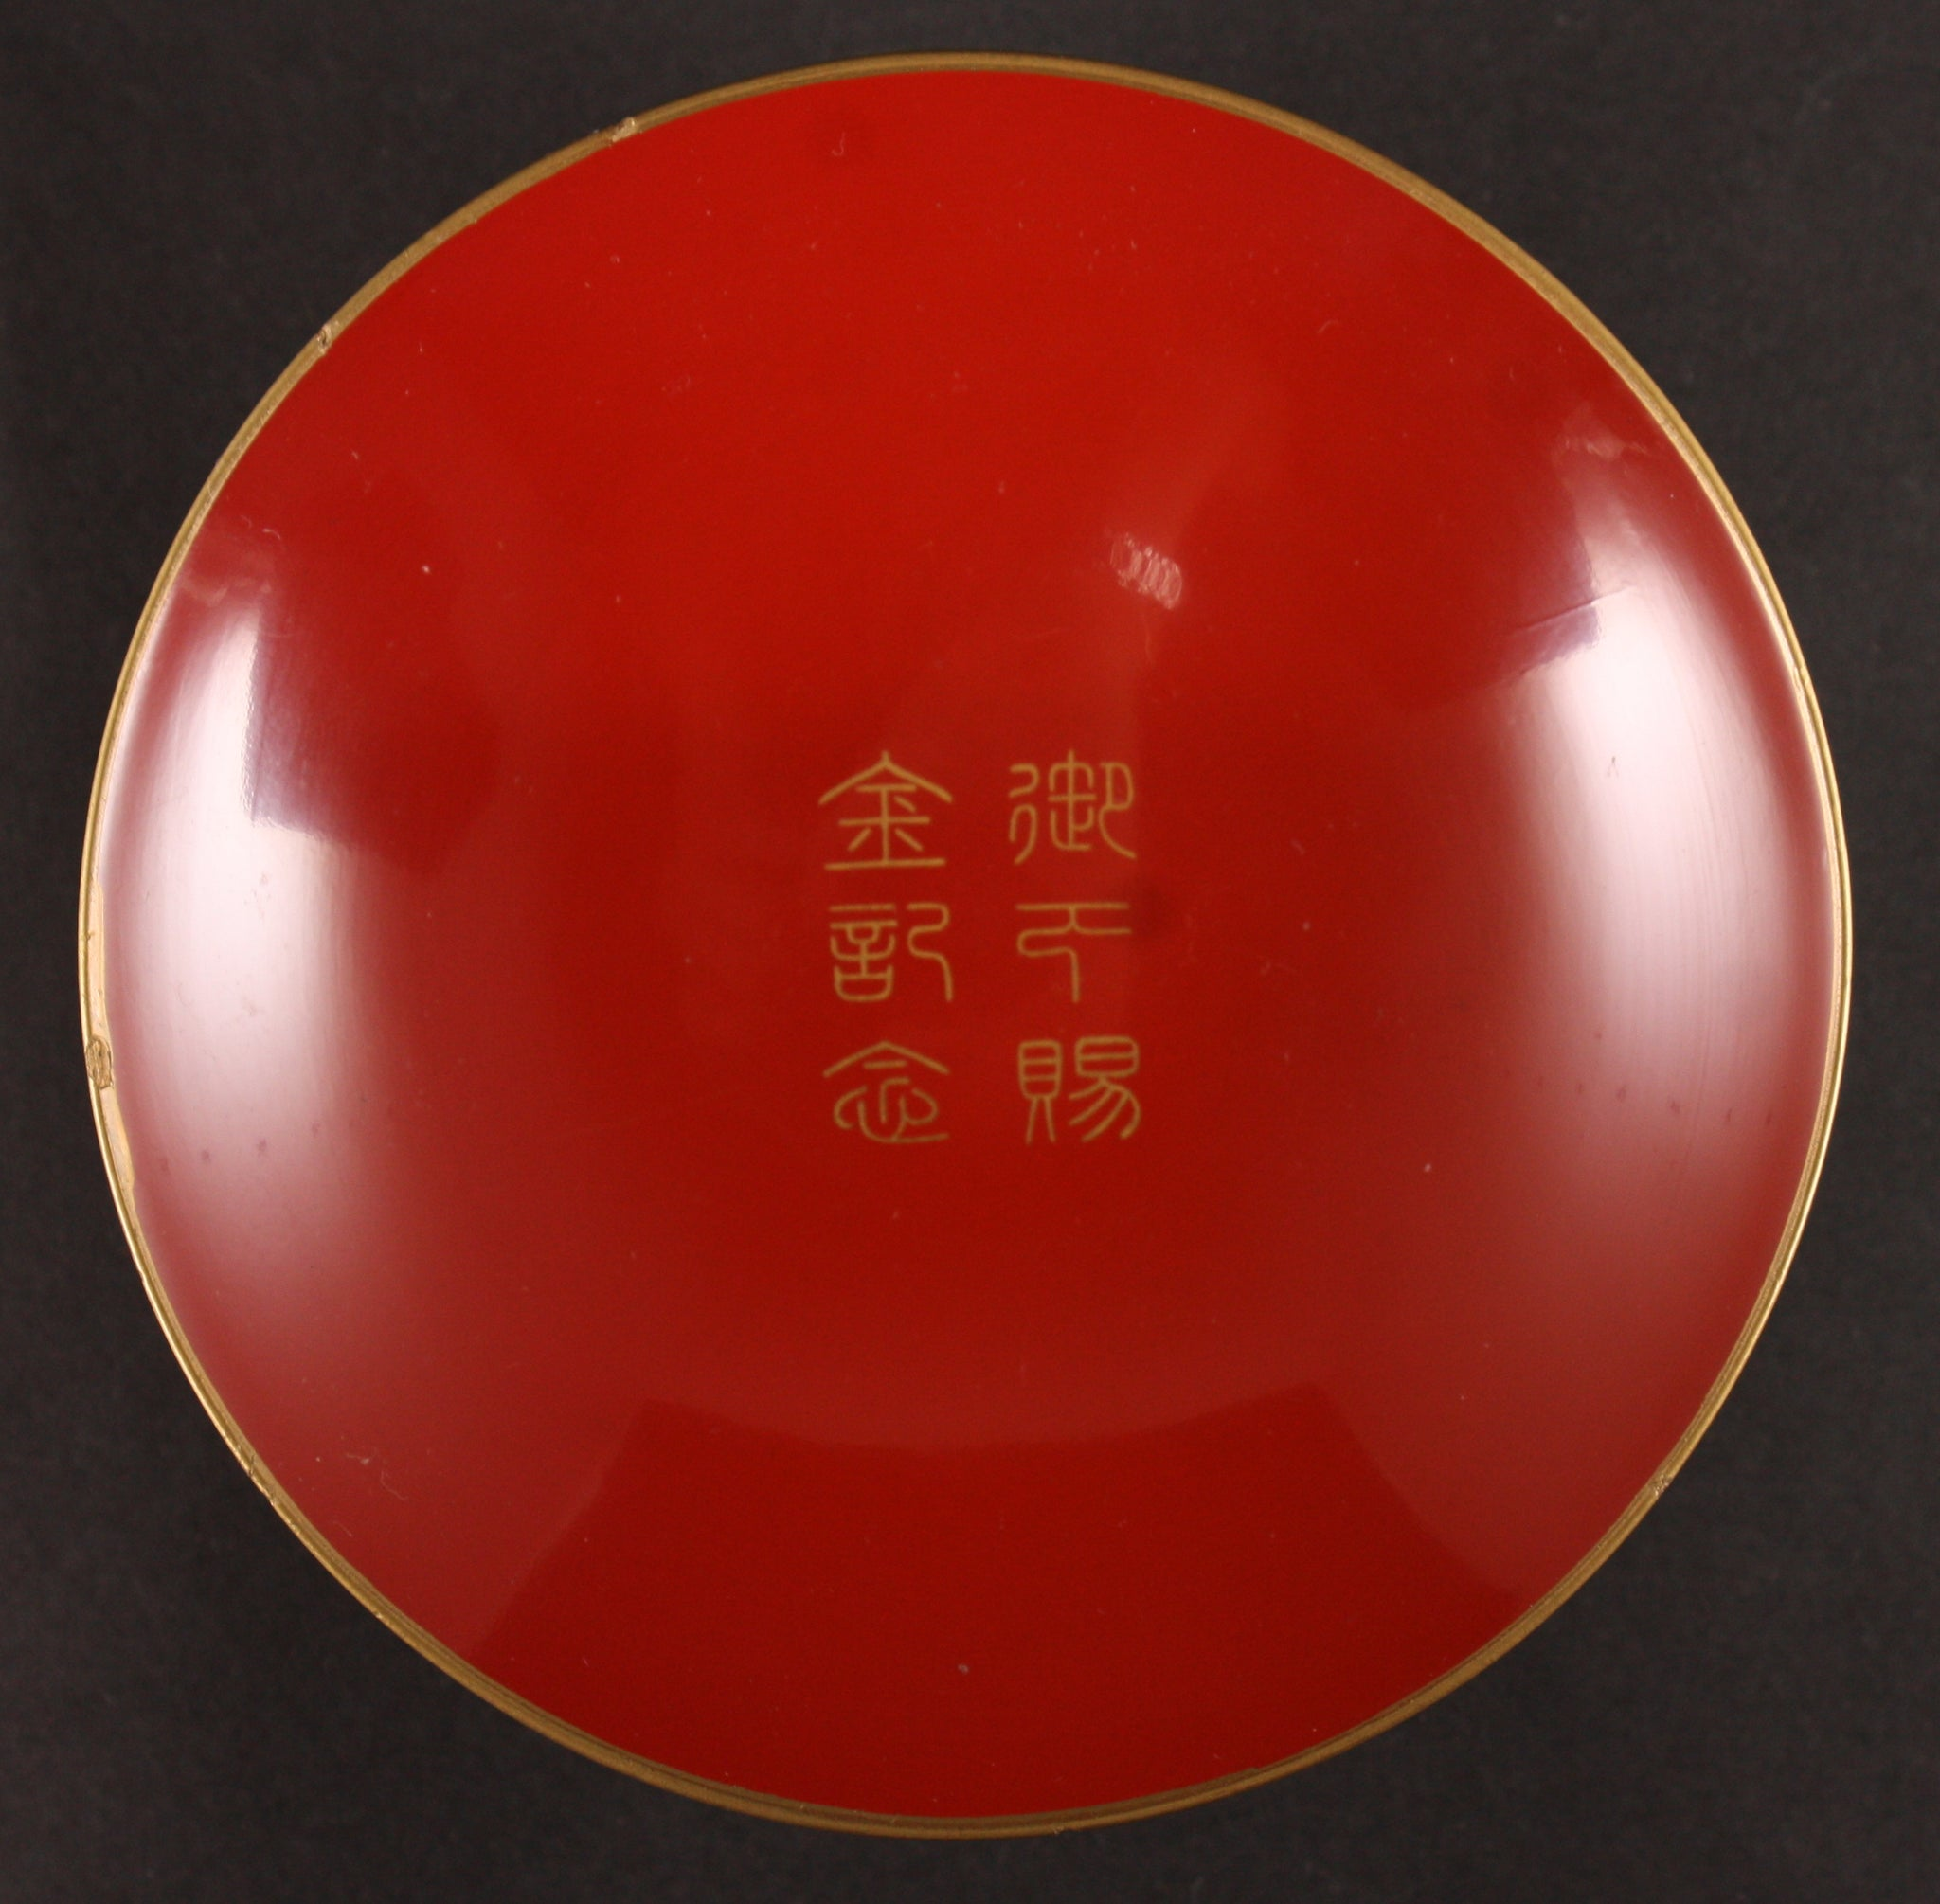 Antique Japanese 1914 Taisho Ueno Park Exhibition Lacquer Sake Cup